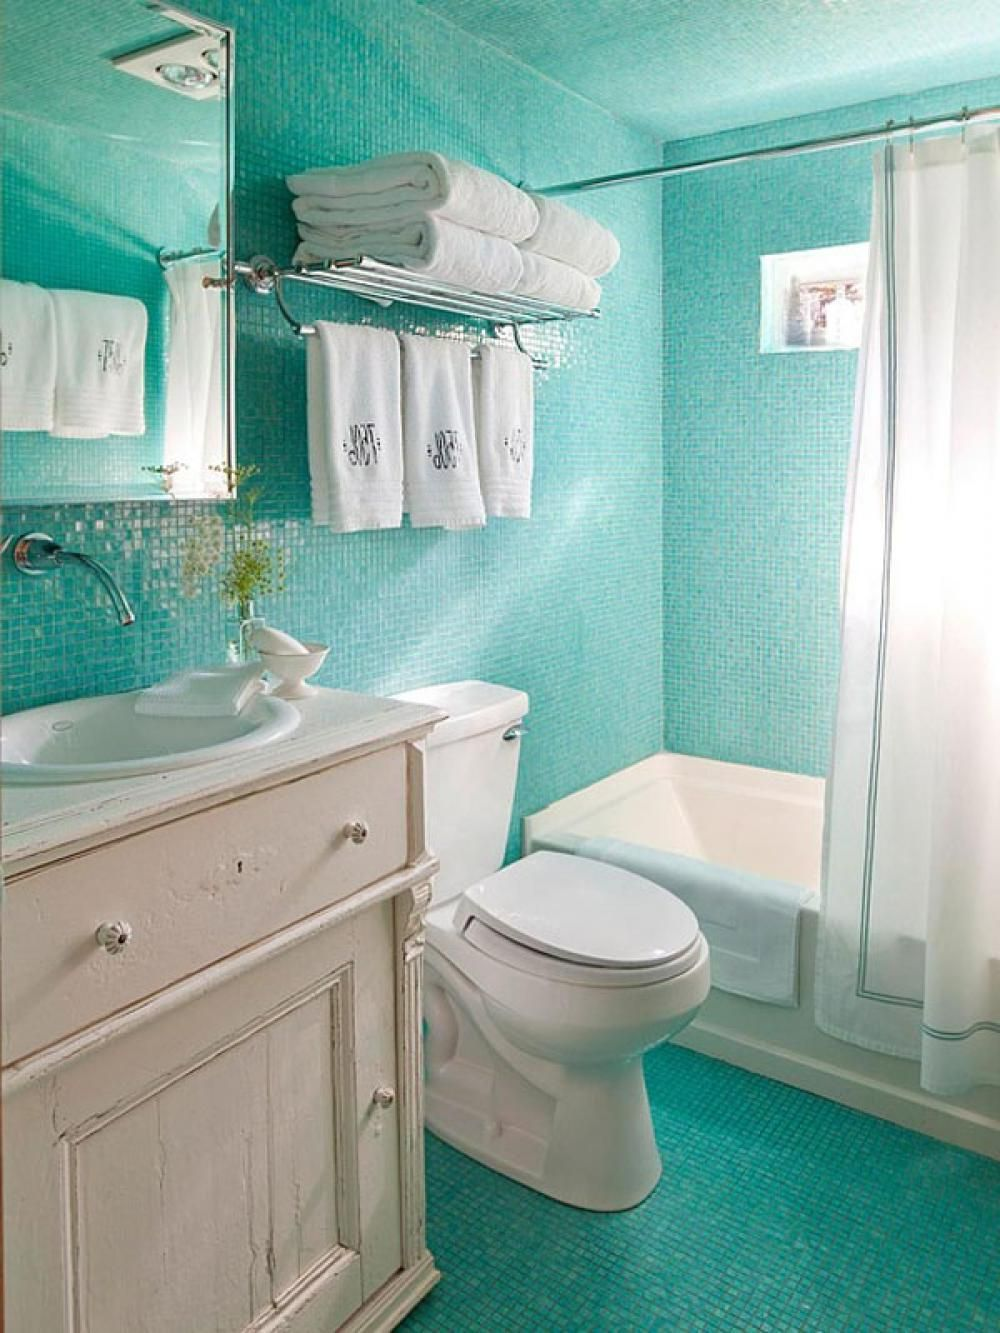 Chic Turquoise Mosaic Tiles Ocean Inspired Bathroom With White - Luxury bath towel sets for small bathroom ideas